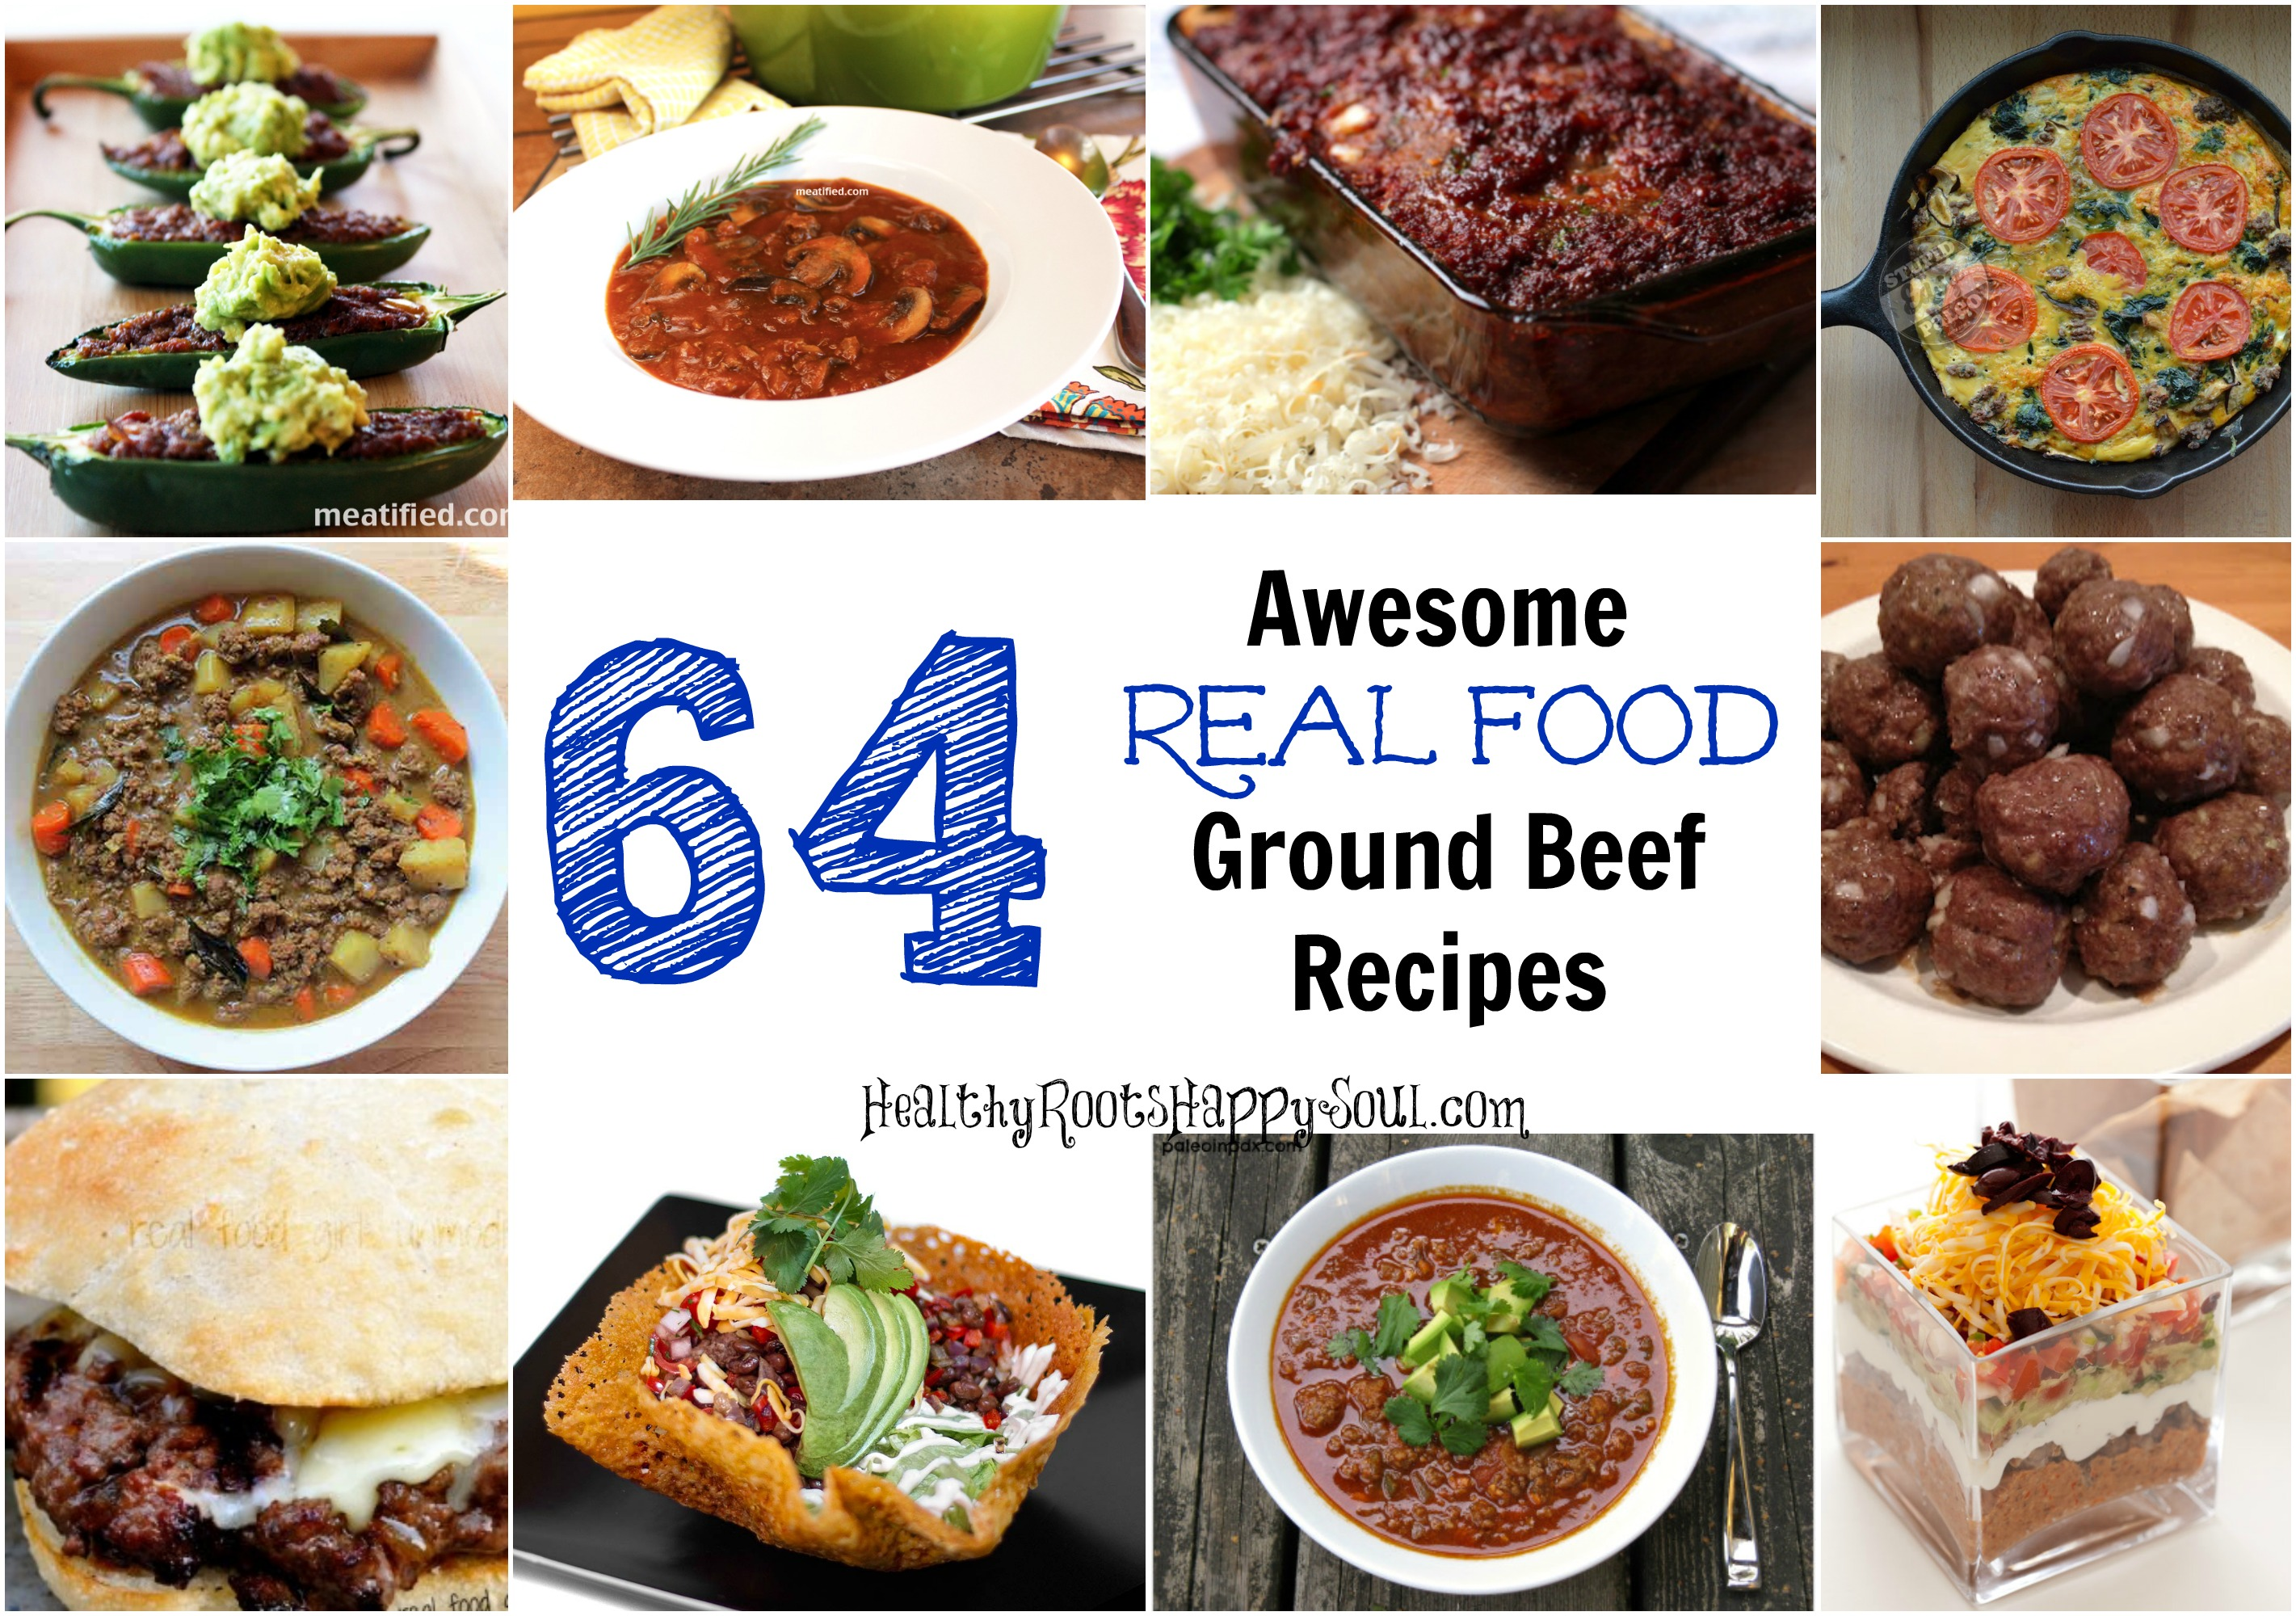 Naturally loriel 64 awesome real food ground beef recipes 64 ground beef recipes forumfinder Gallery